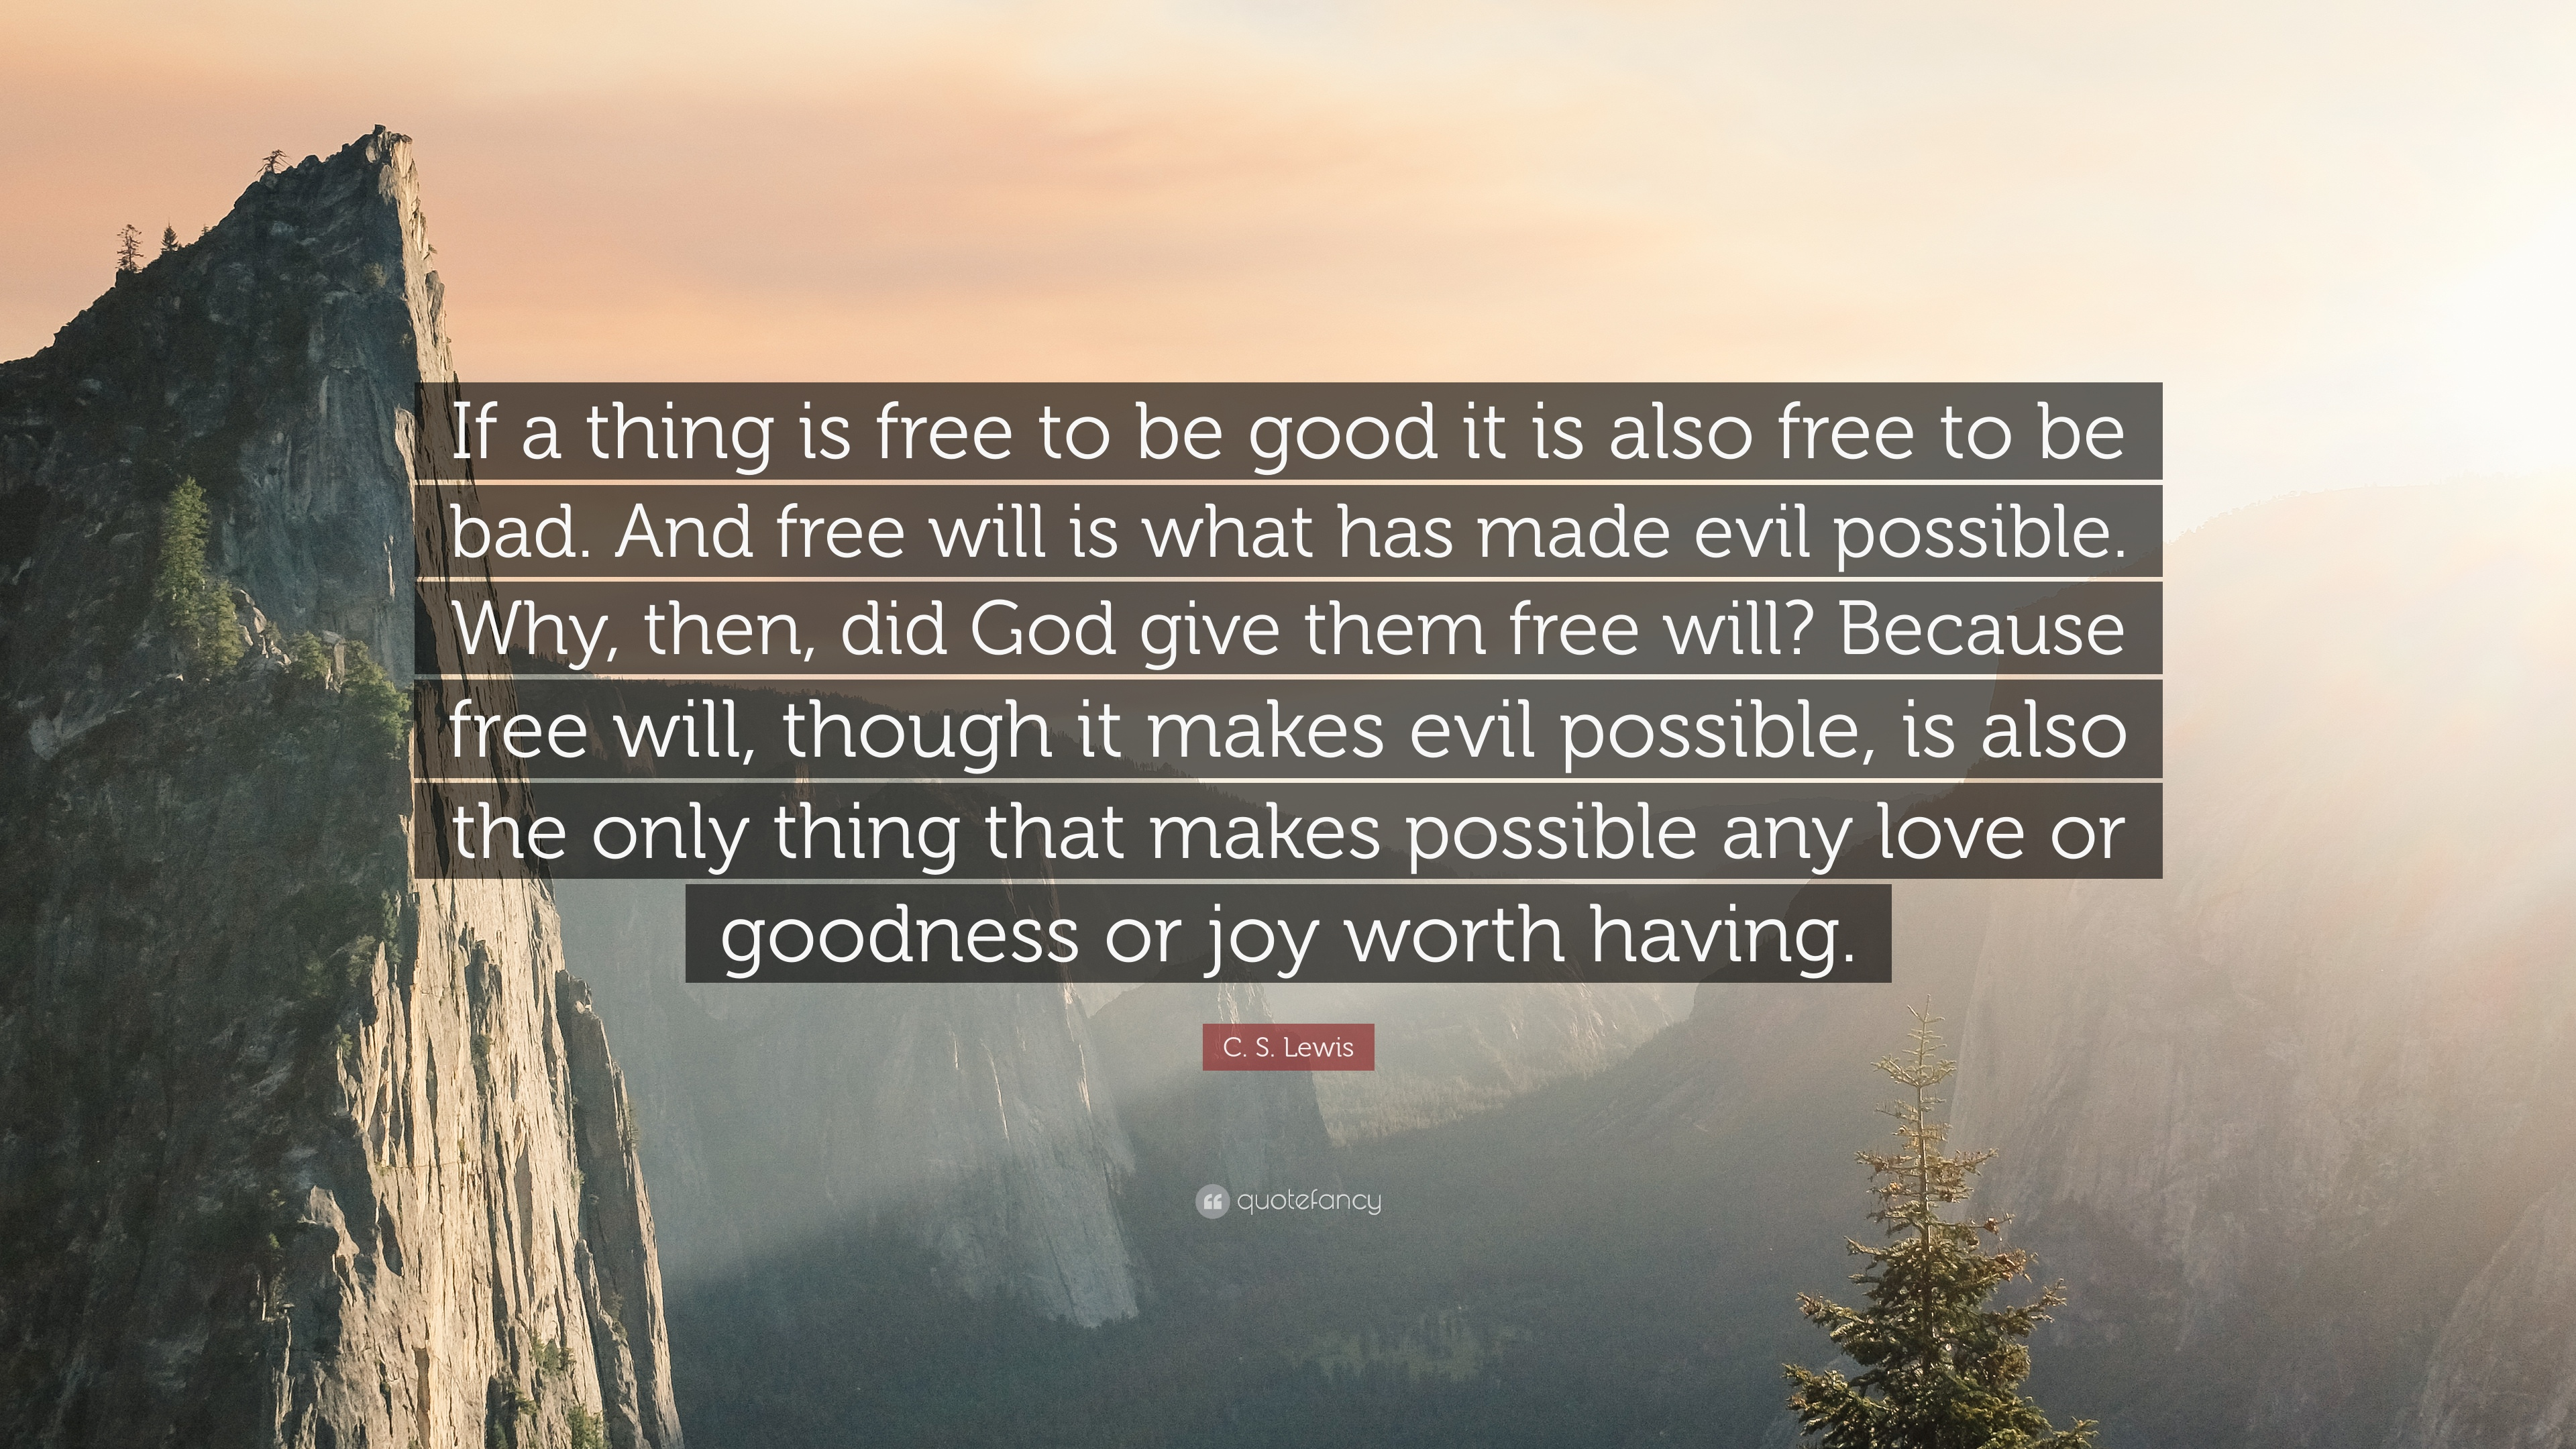 449307-C-S-Lewis-Quote-If-a-thing-is-free-to-be-good-it-is-also-free-to.jpg